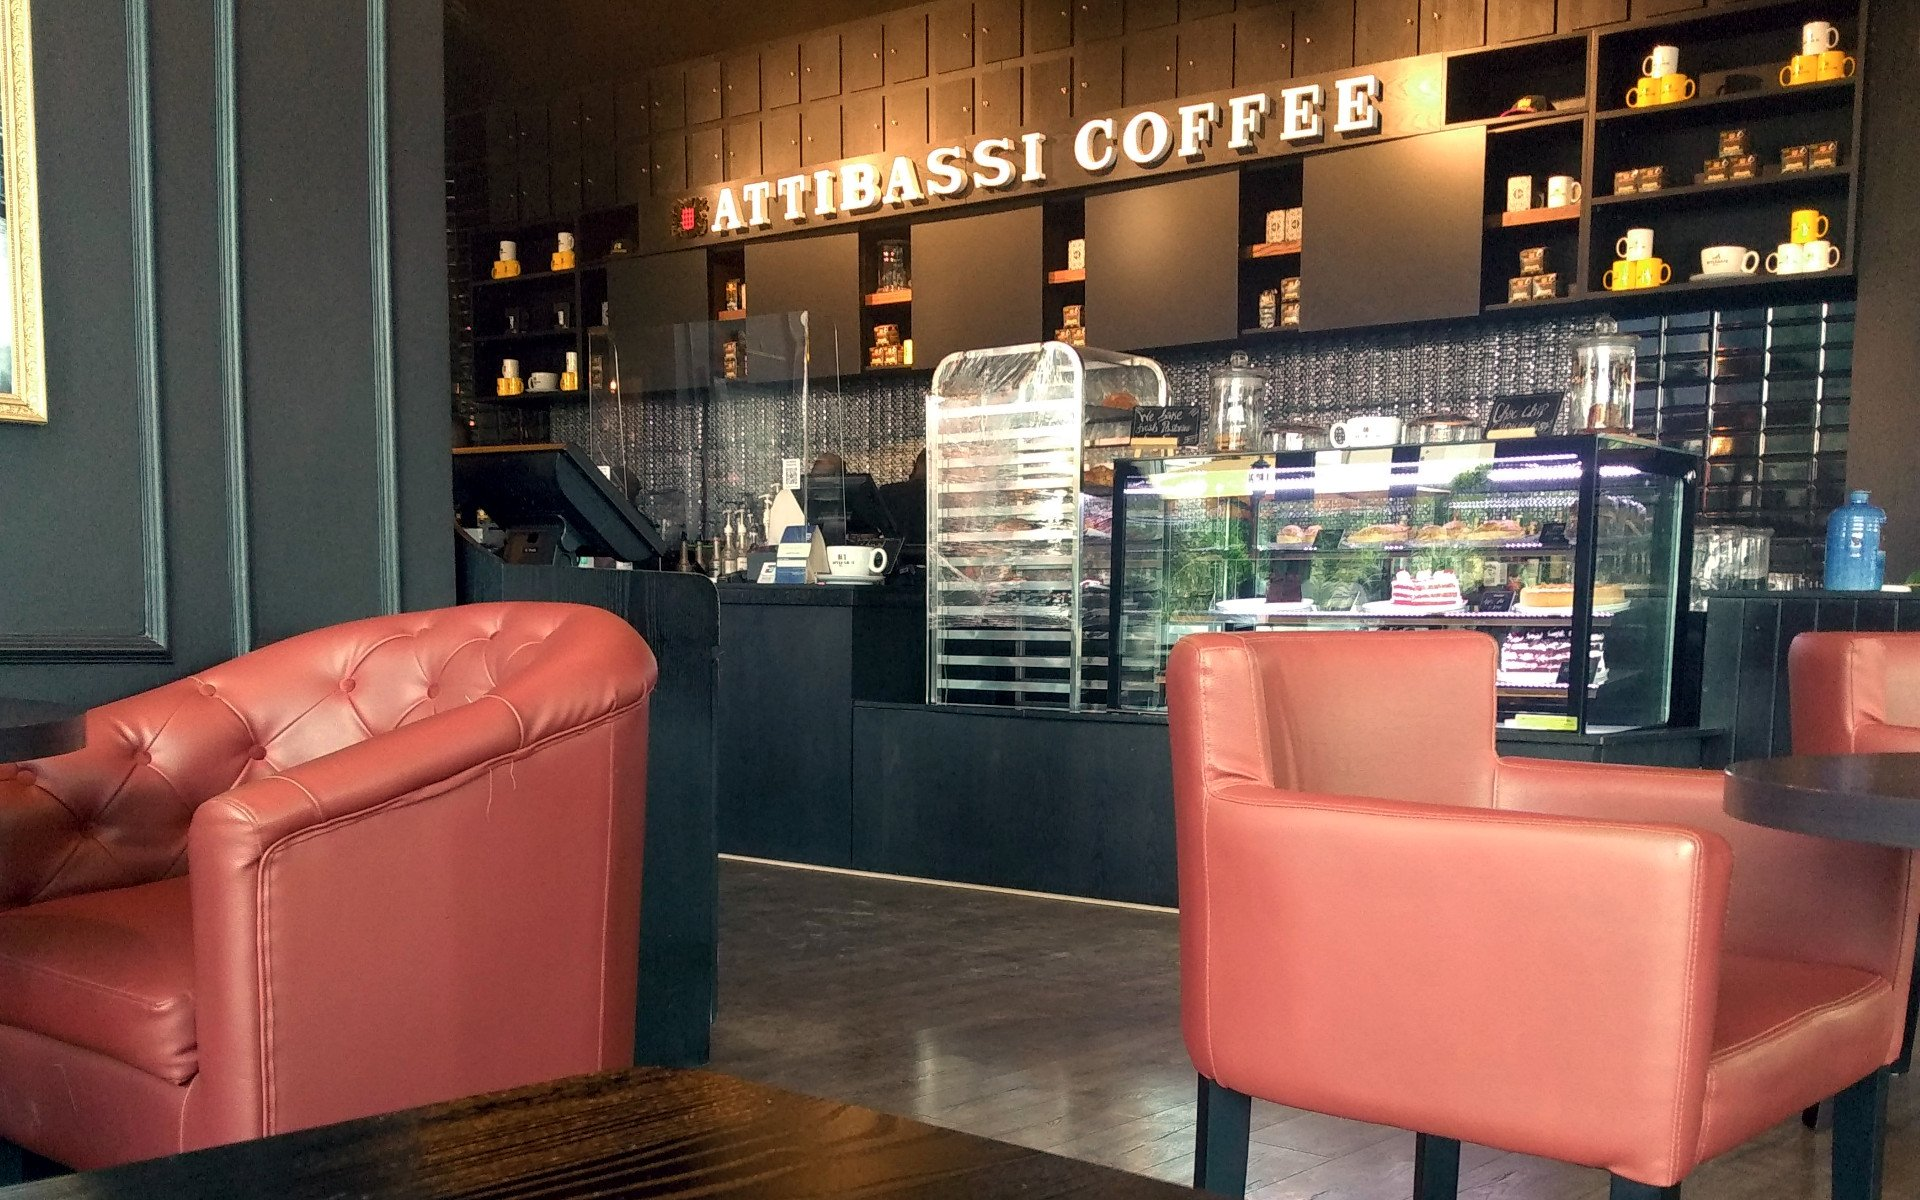 Attibassi Coffee on the ground floor of the stylish 195M Britam Tower along Hospital Road in UpperHill is the brainchild of two Italian confectioners, Agostino Atti and Marco Bassi (hence the name Attibassi).